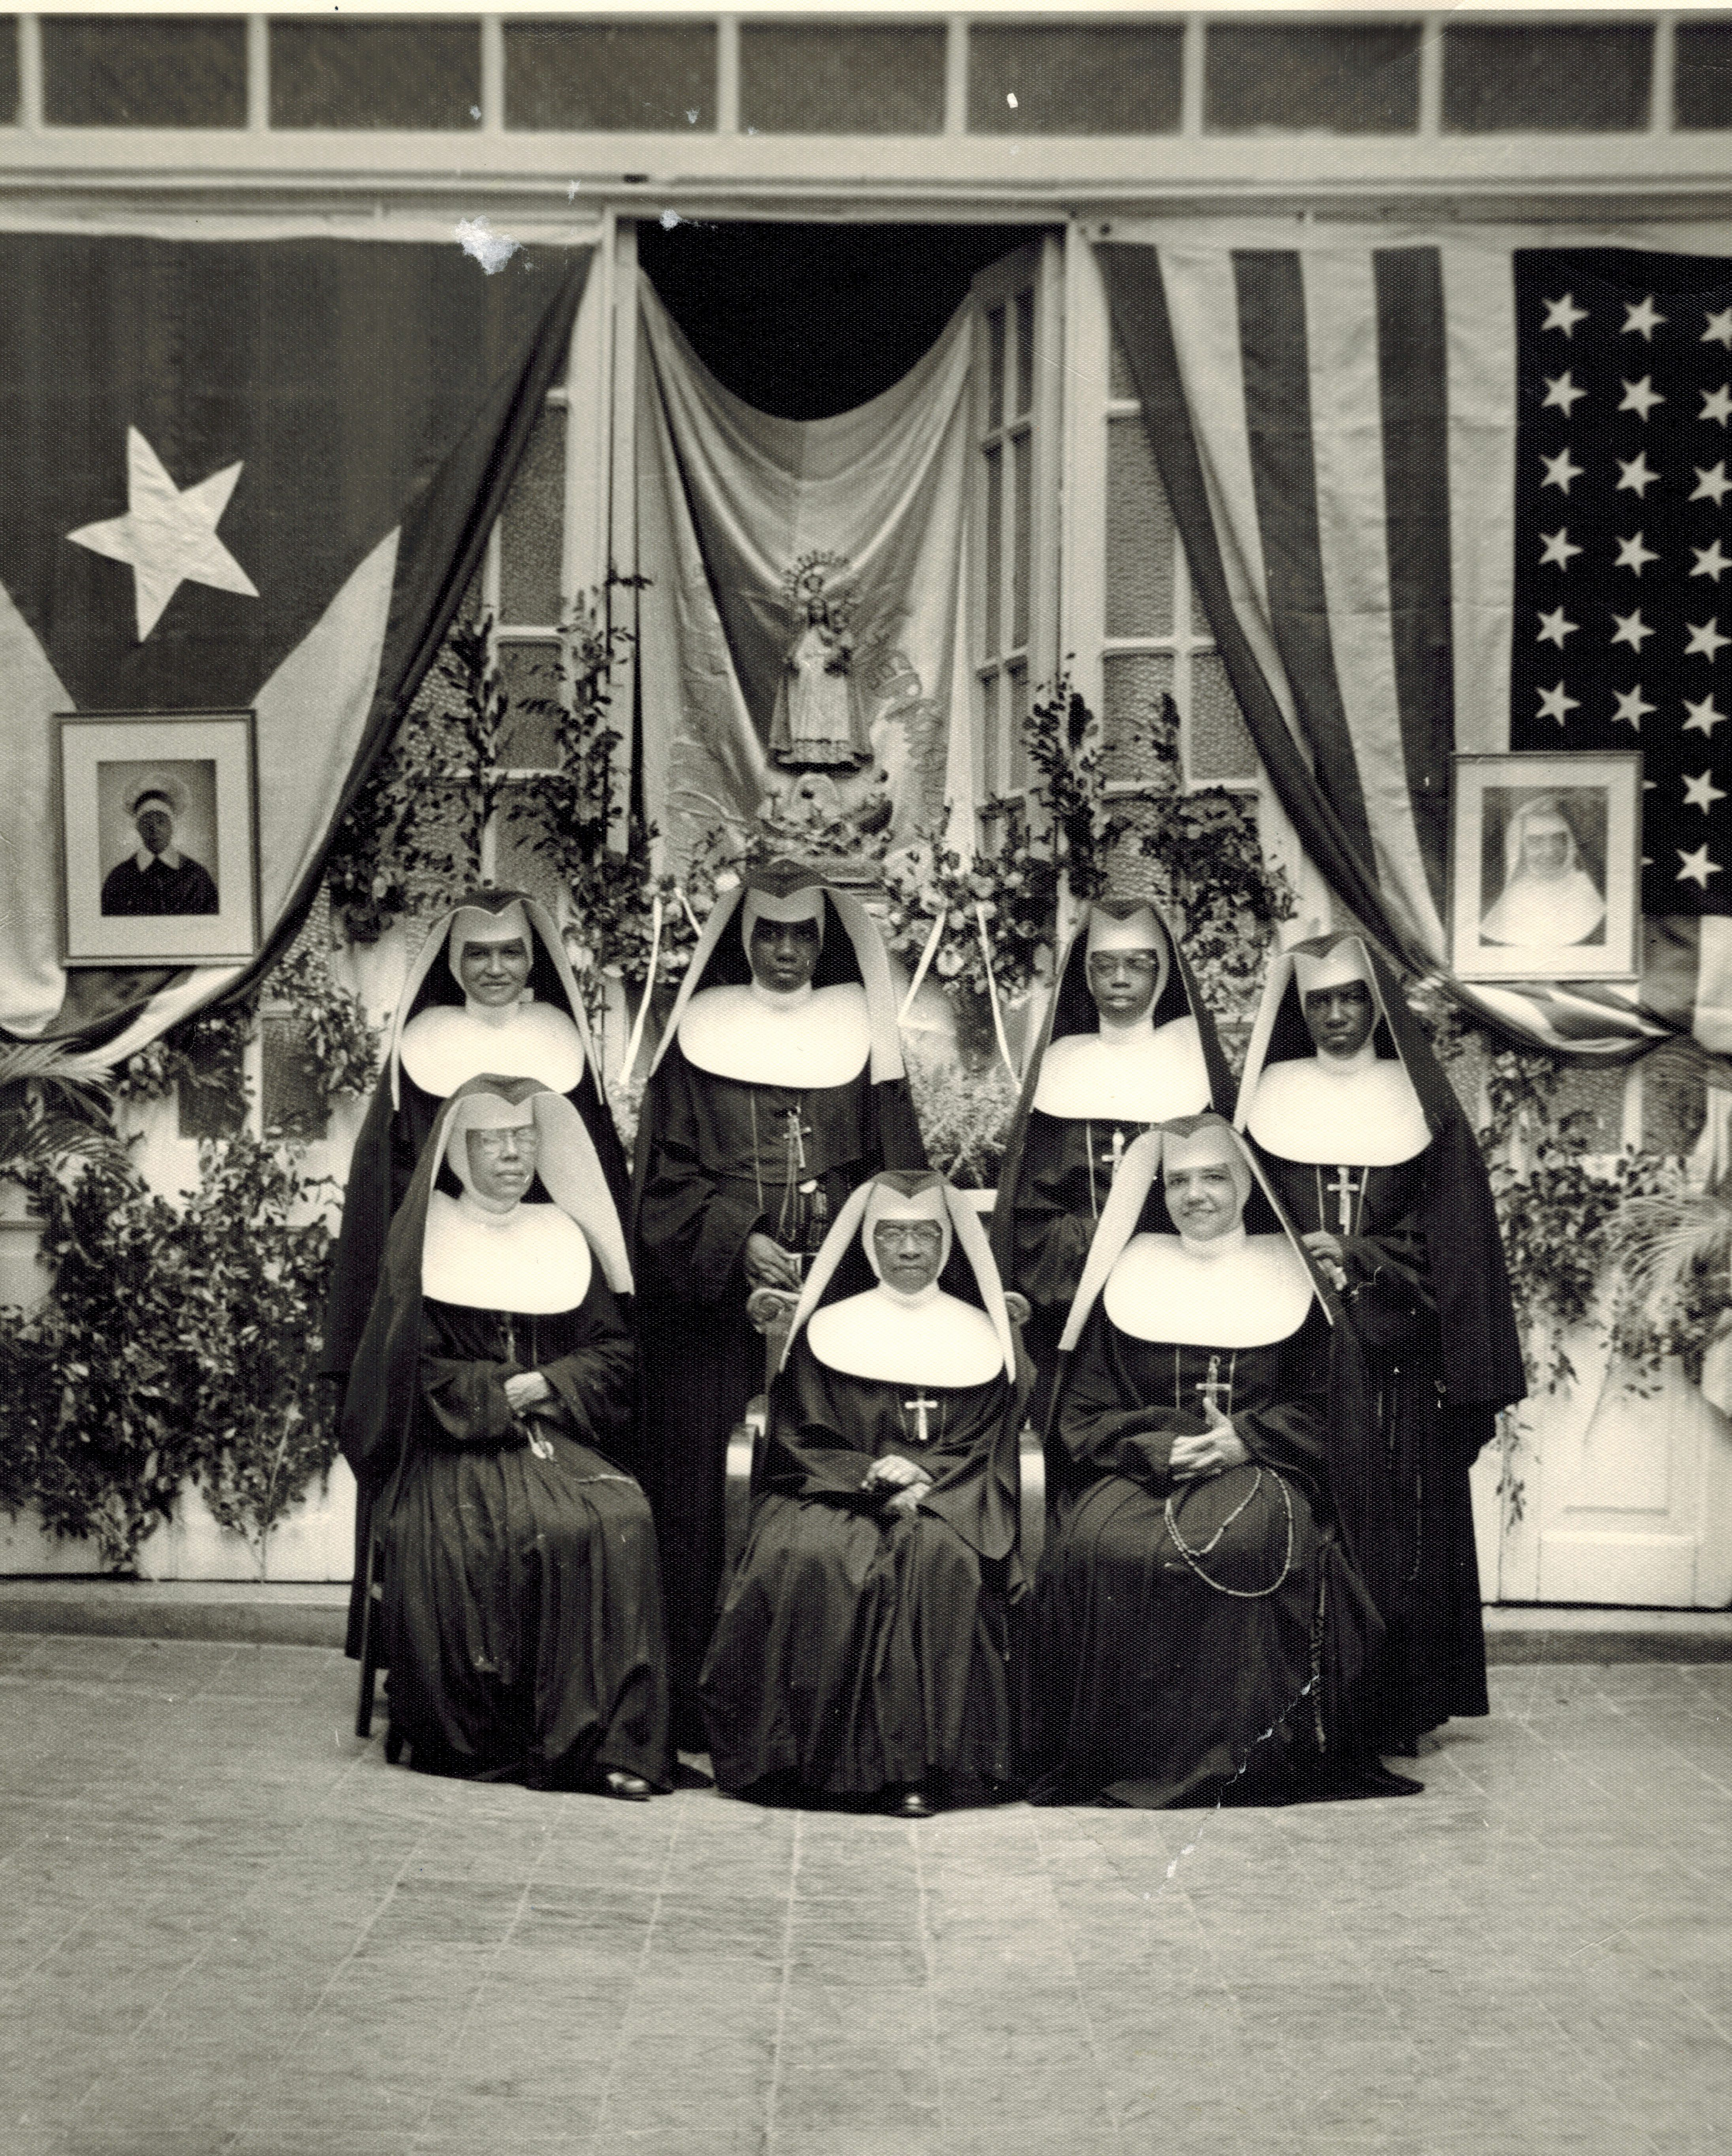 1954 photo of Sisters Margarita, Carmen, Maris Stella, Henrietta, Emmanuel, Teresa [Superior General at the time] & Zoila @ Our Lady of Charity in Havana.  On the left is a picture of Mother Lange in front of the Cuban flag, while on the right is a picture of Mother Consuella Clifford in front of the American flag.